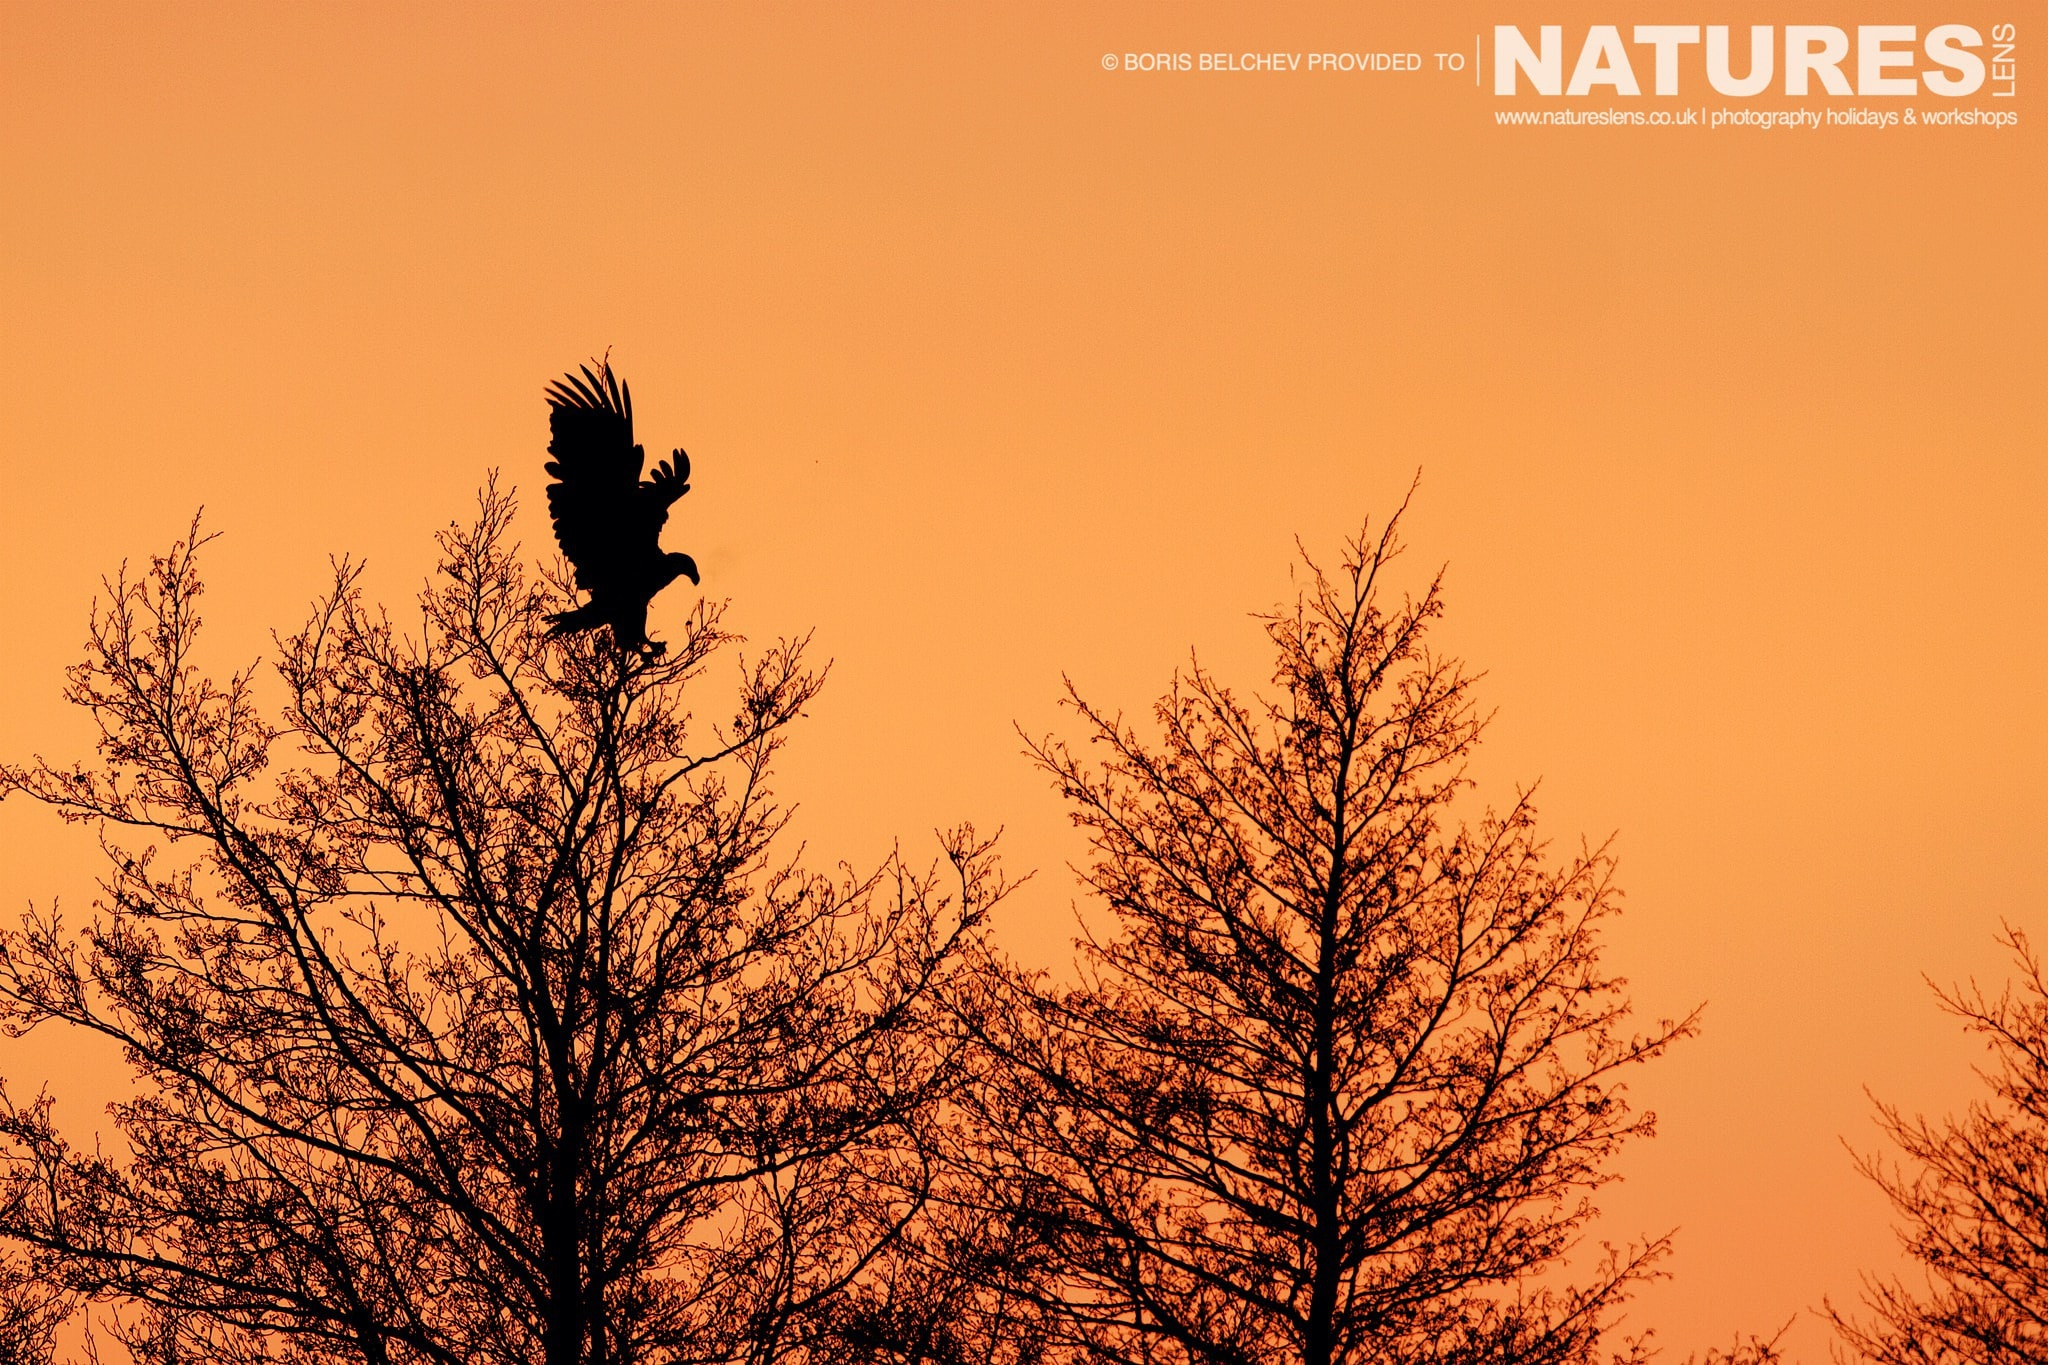 One Of The White Tailed Sea Eagles Sits High In The Trees Above The Nemunas Delta Photographed At The Locations Used For The NaturesLens White Tailed Sea Eagles Of Lithuania Photography Holiday